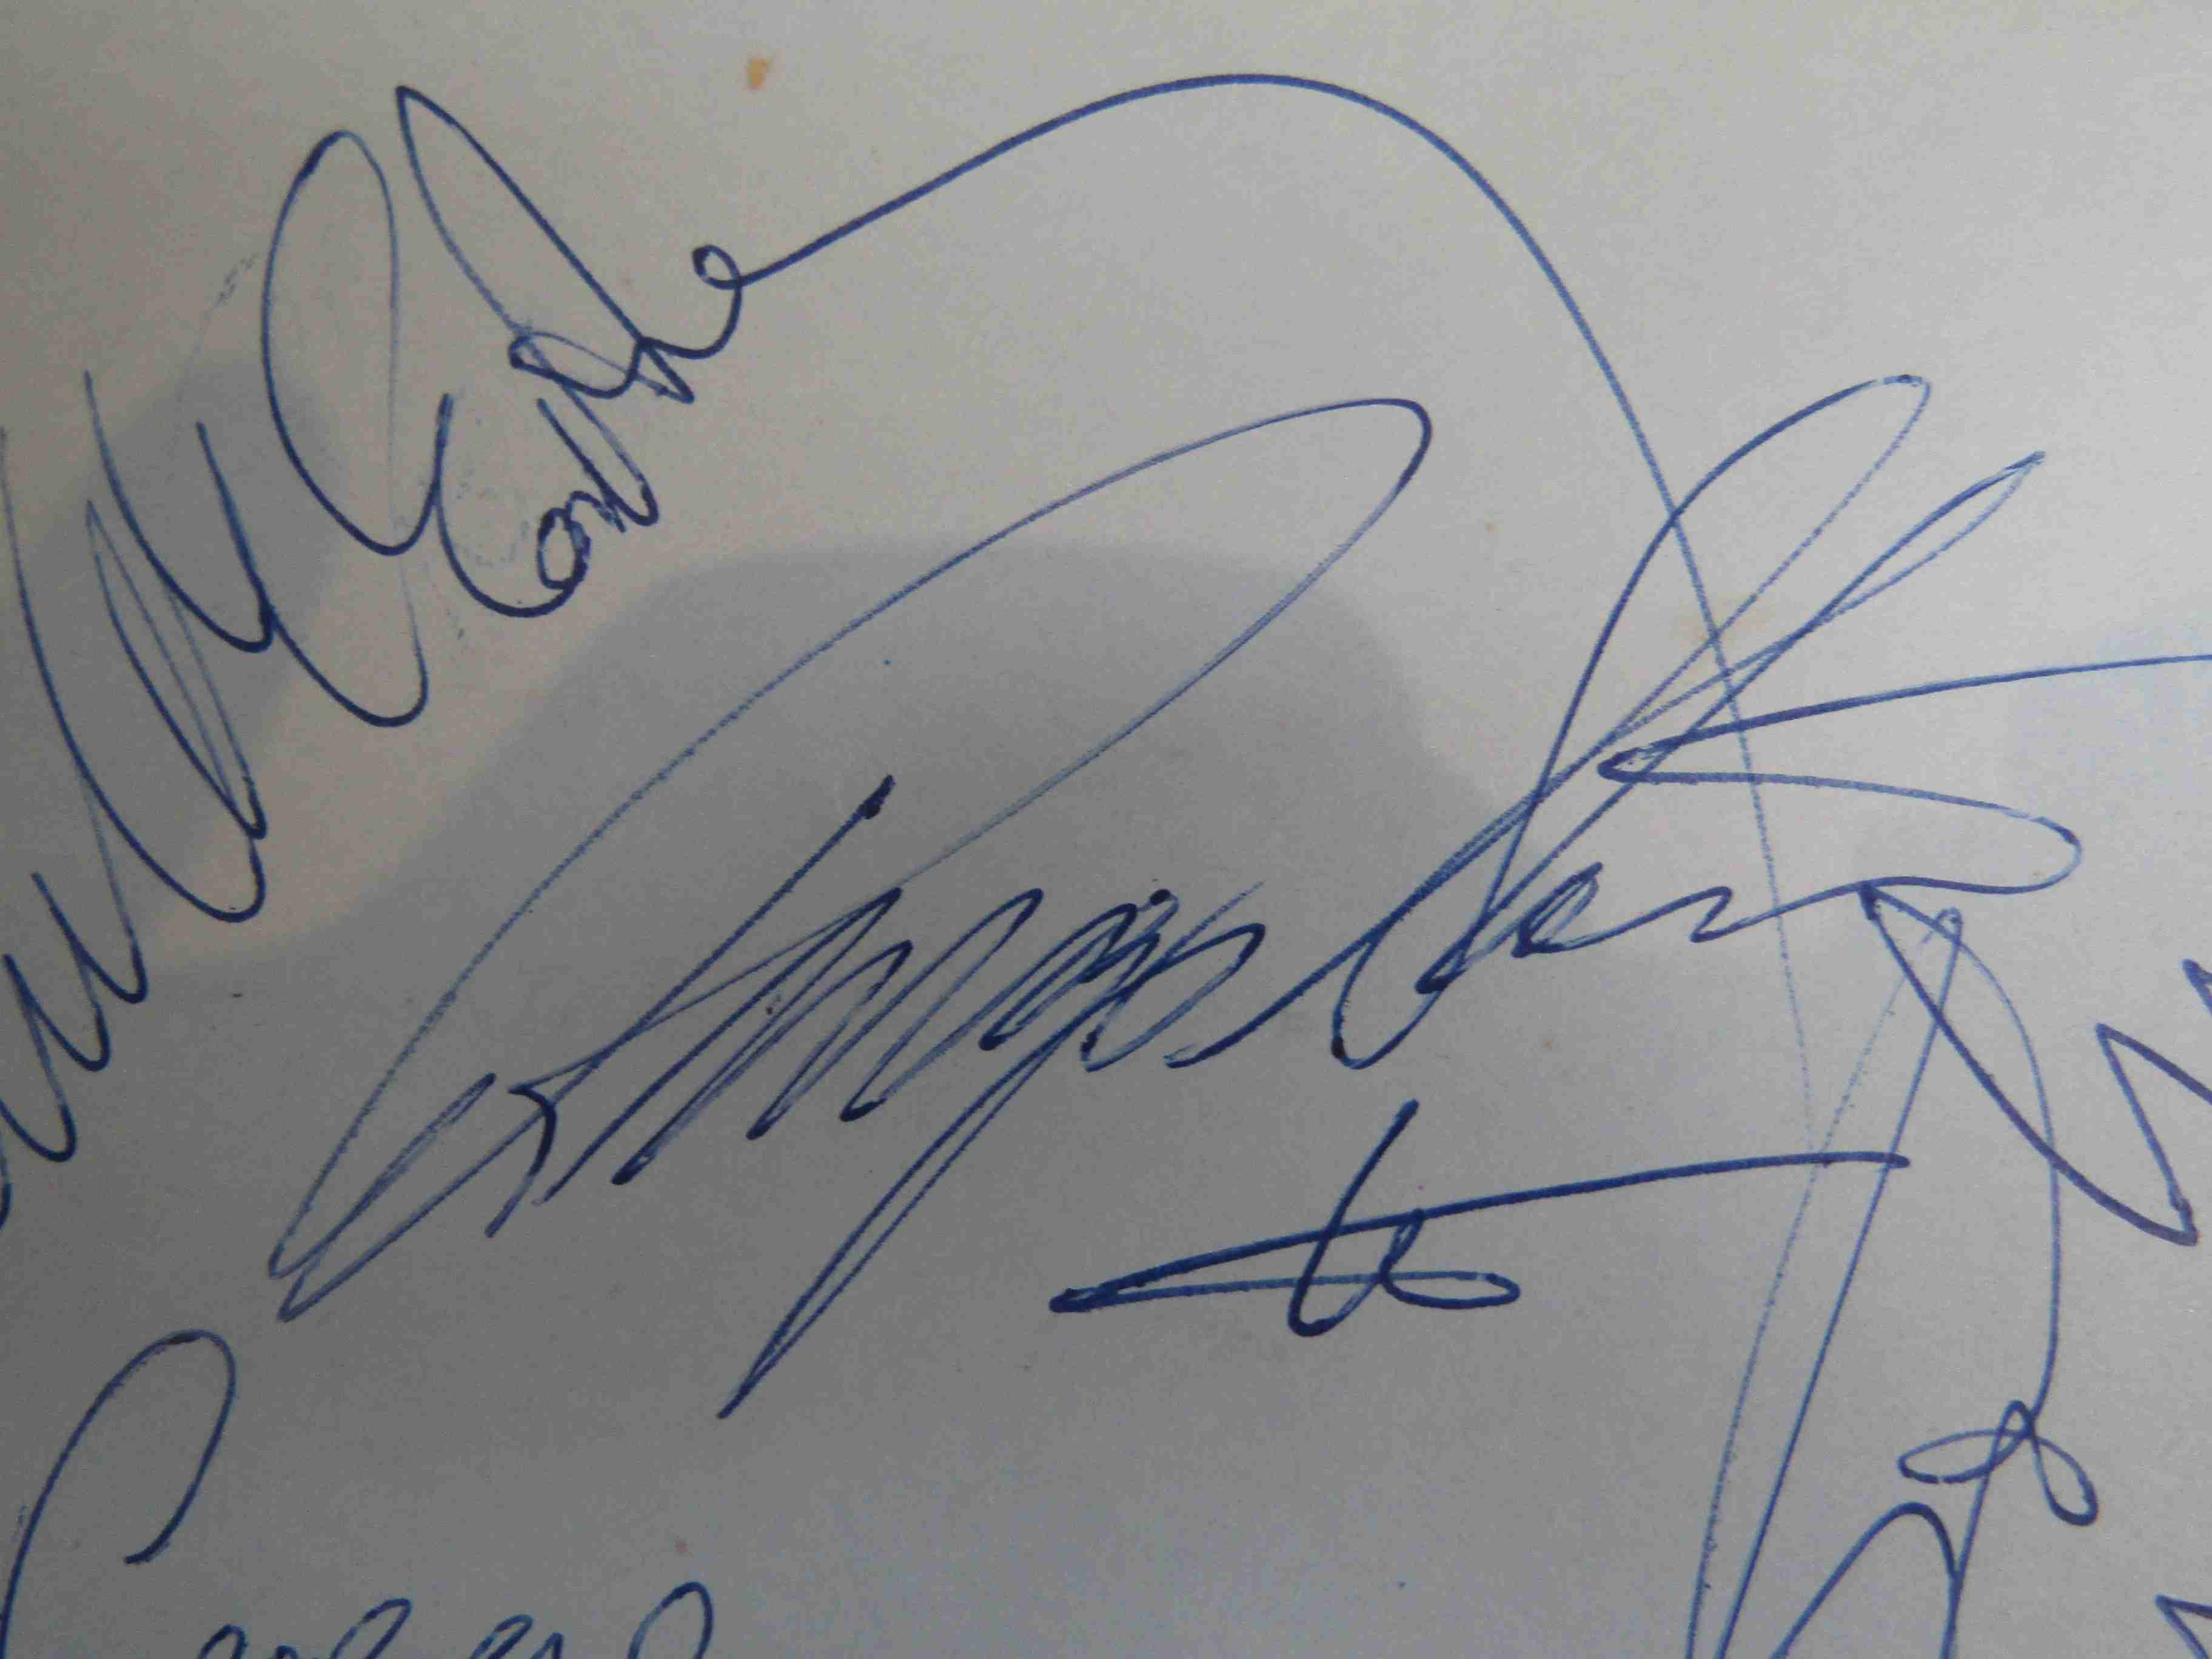 Two 1950s/60s autograph books containing autographs by Benny Hill, Honor Blackman, Barbara Shelley, - Image 4 of 34